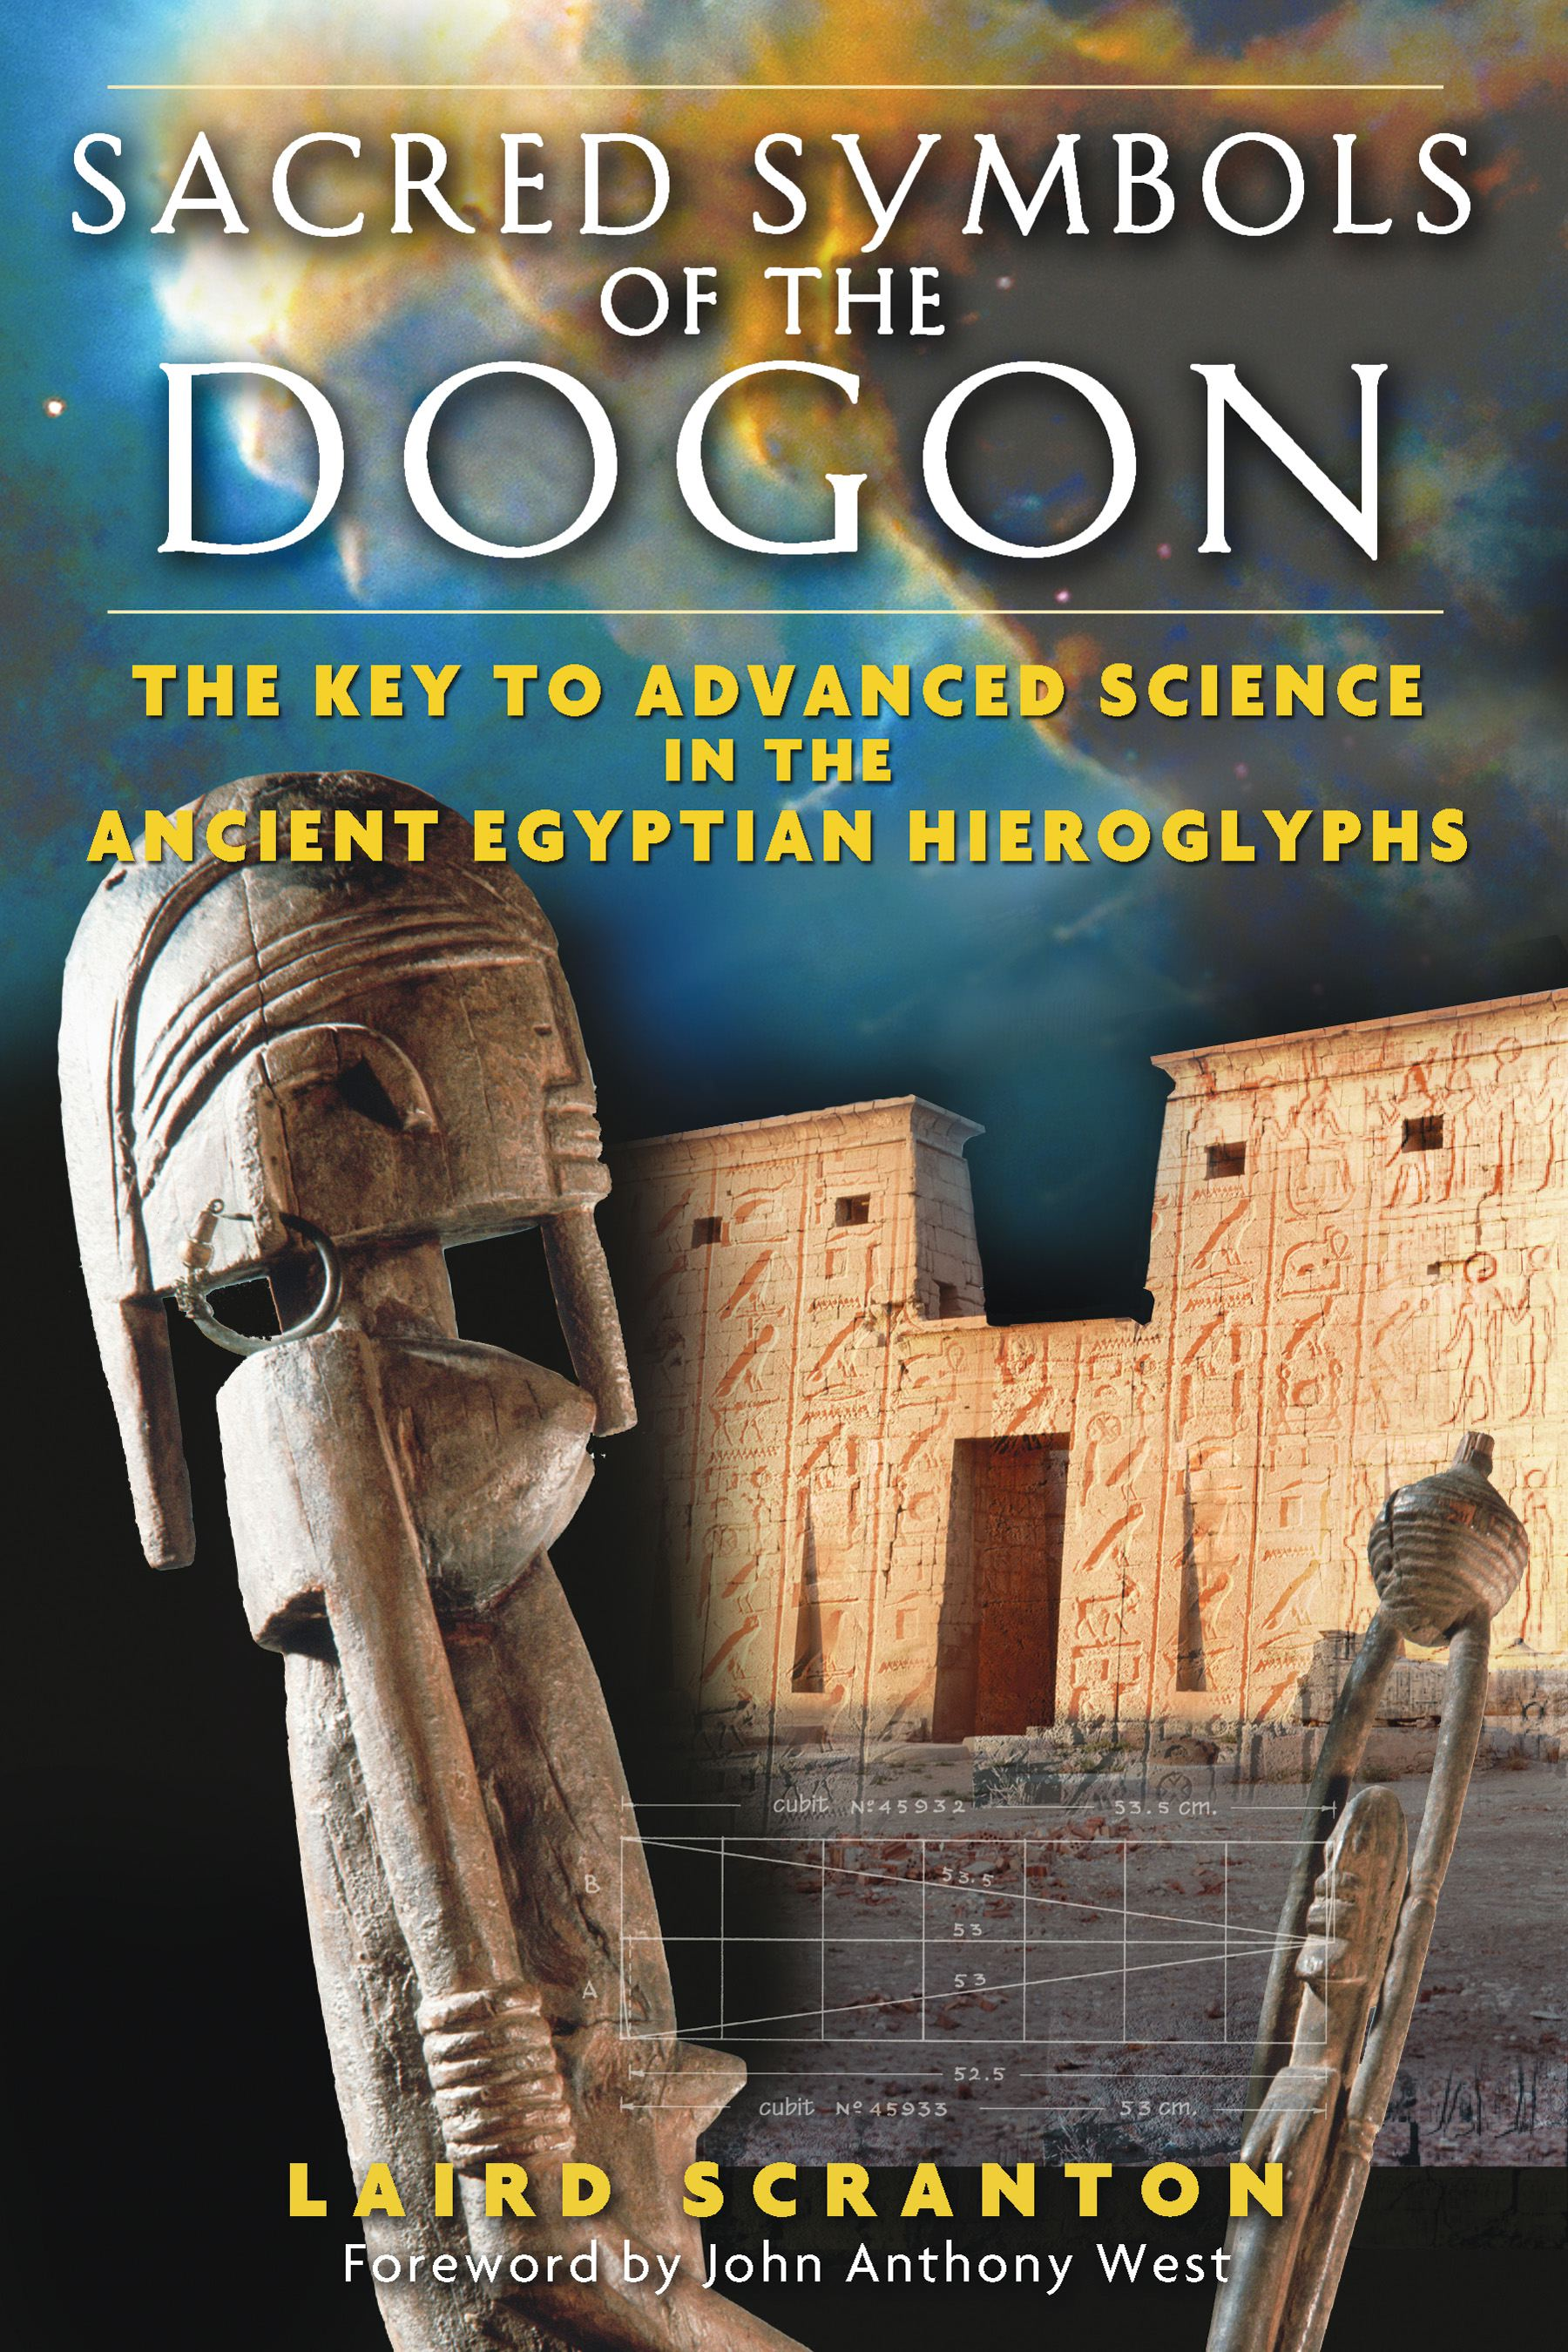 Sacred symbols of the dogon book by laird scranton john anthony sacred symbols of the dogon 9781594771347 hr biocorpaavc